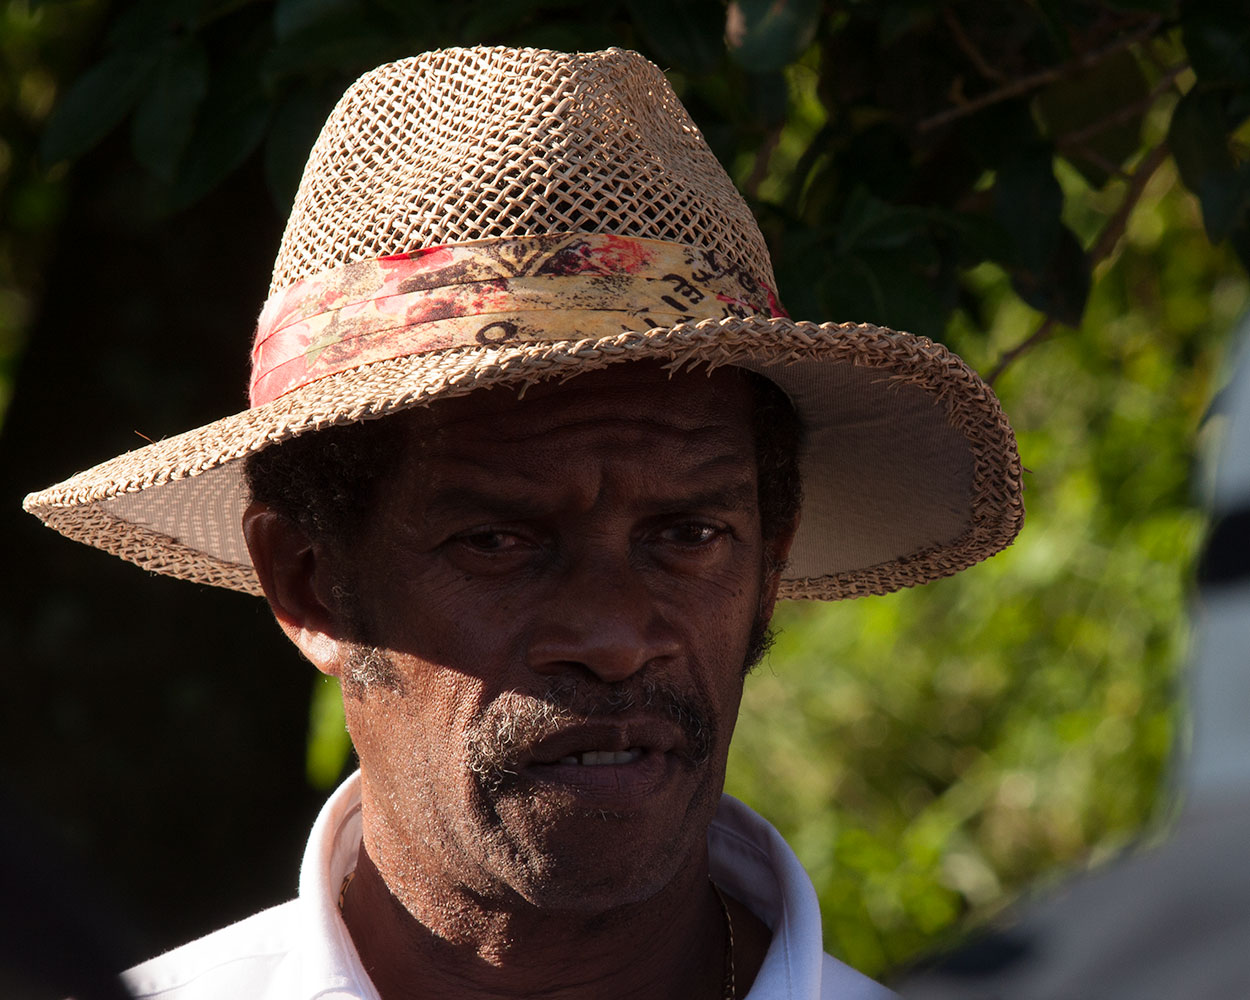 Lashi, our excellent local guide. He's been leading groups through the park since he was 15 years old!